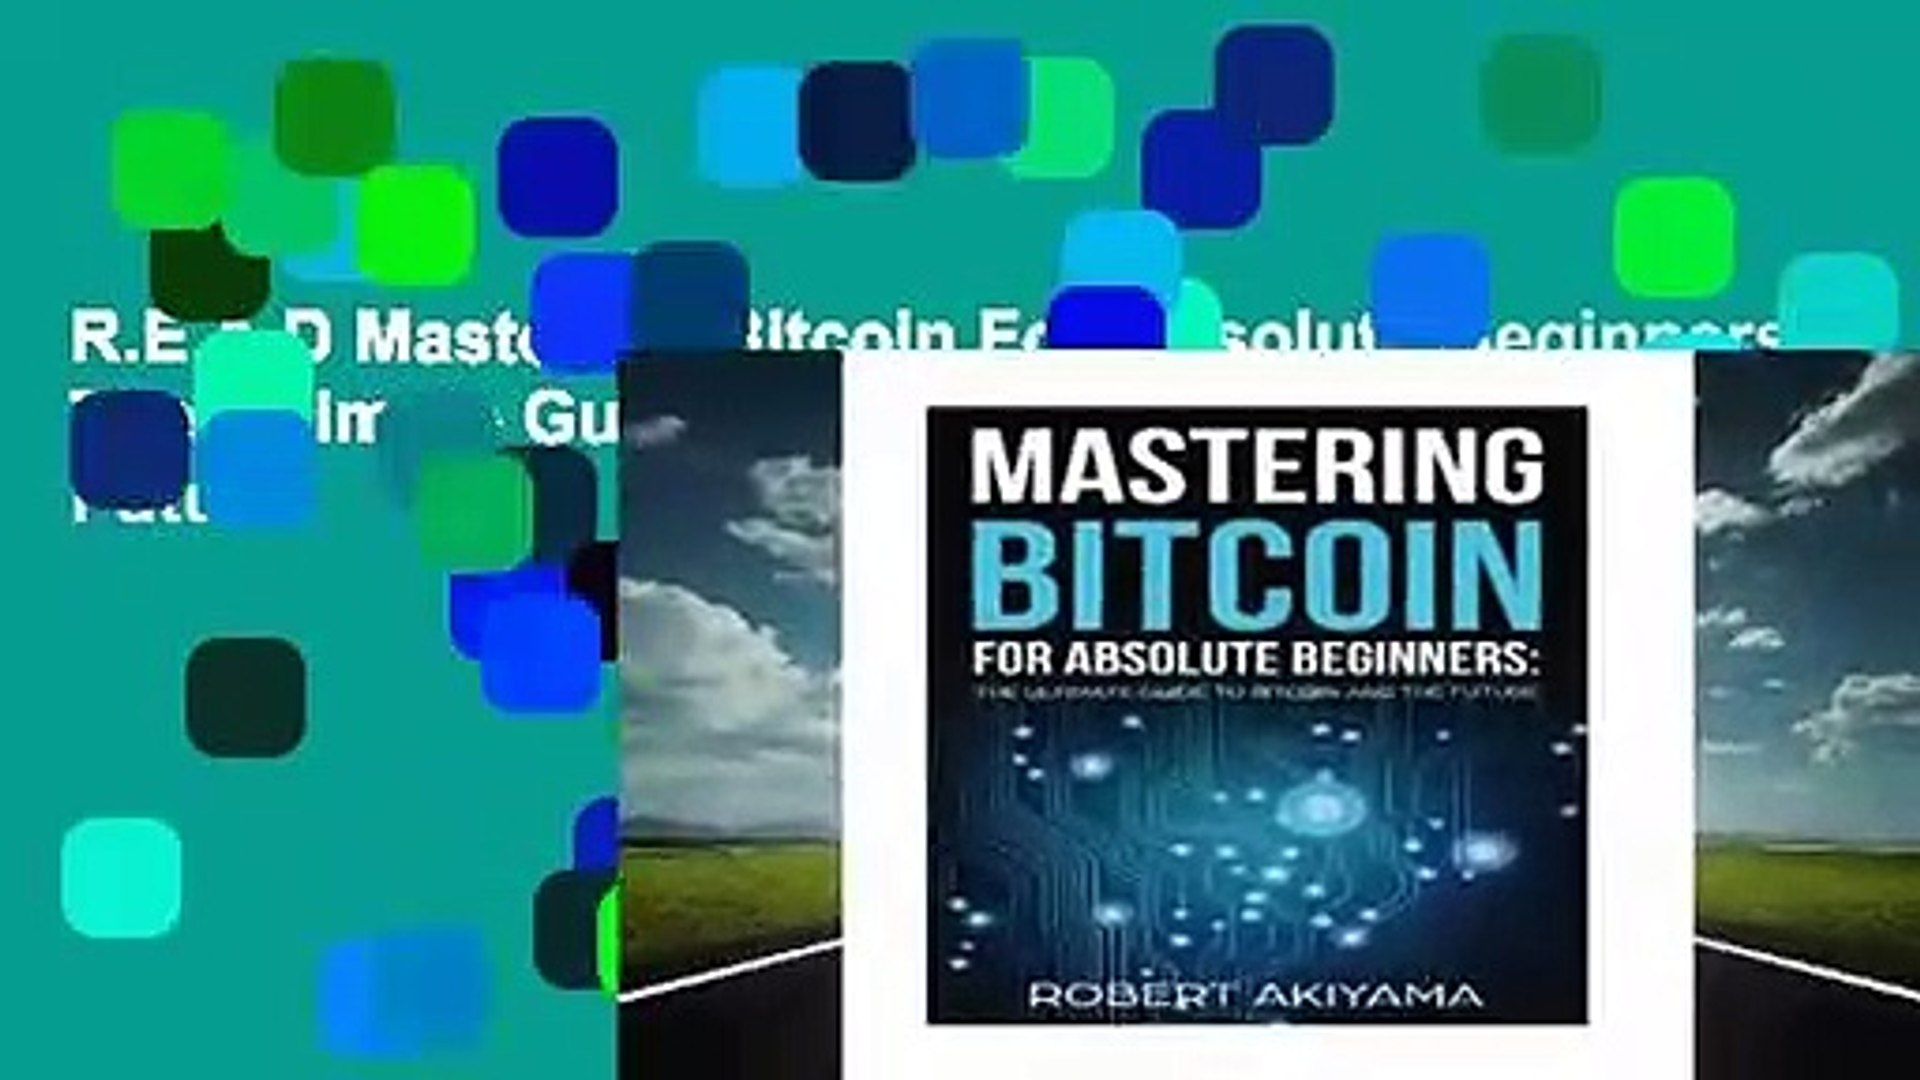 R.E.A.D Mastering Bitcoin For Absolute Beginners: The Ultimate Guide To Bitcoin And The Future